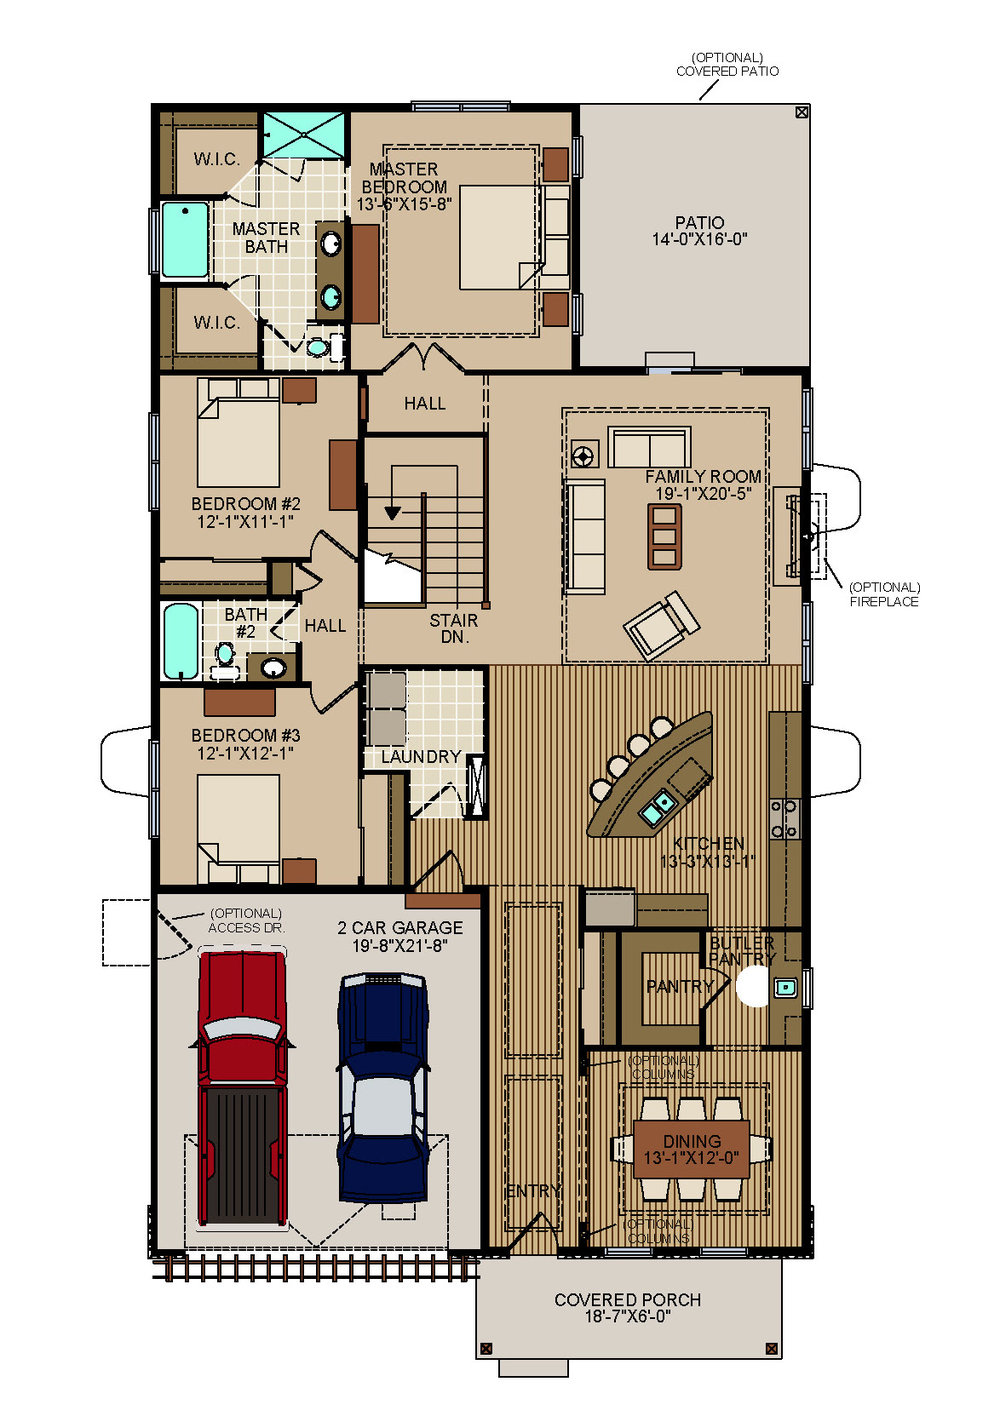 2013madison-firstfloorplan.jpg